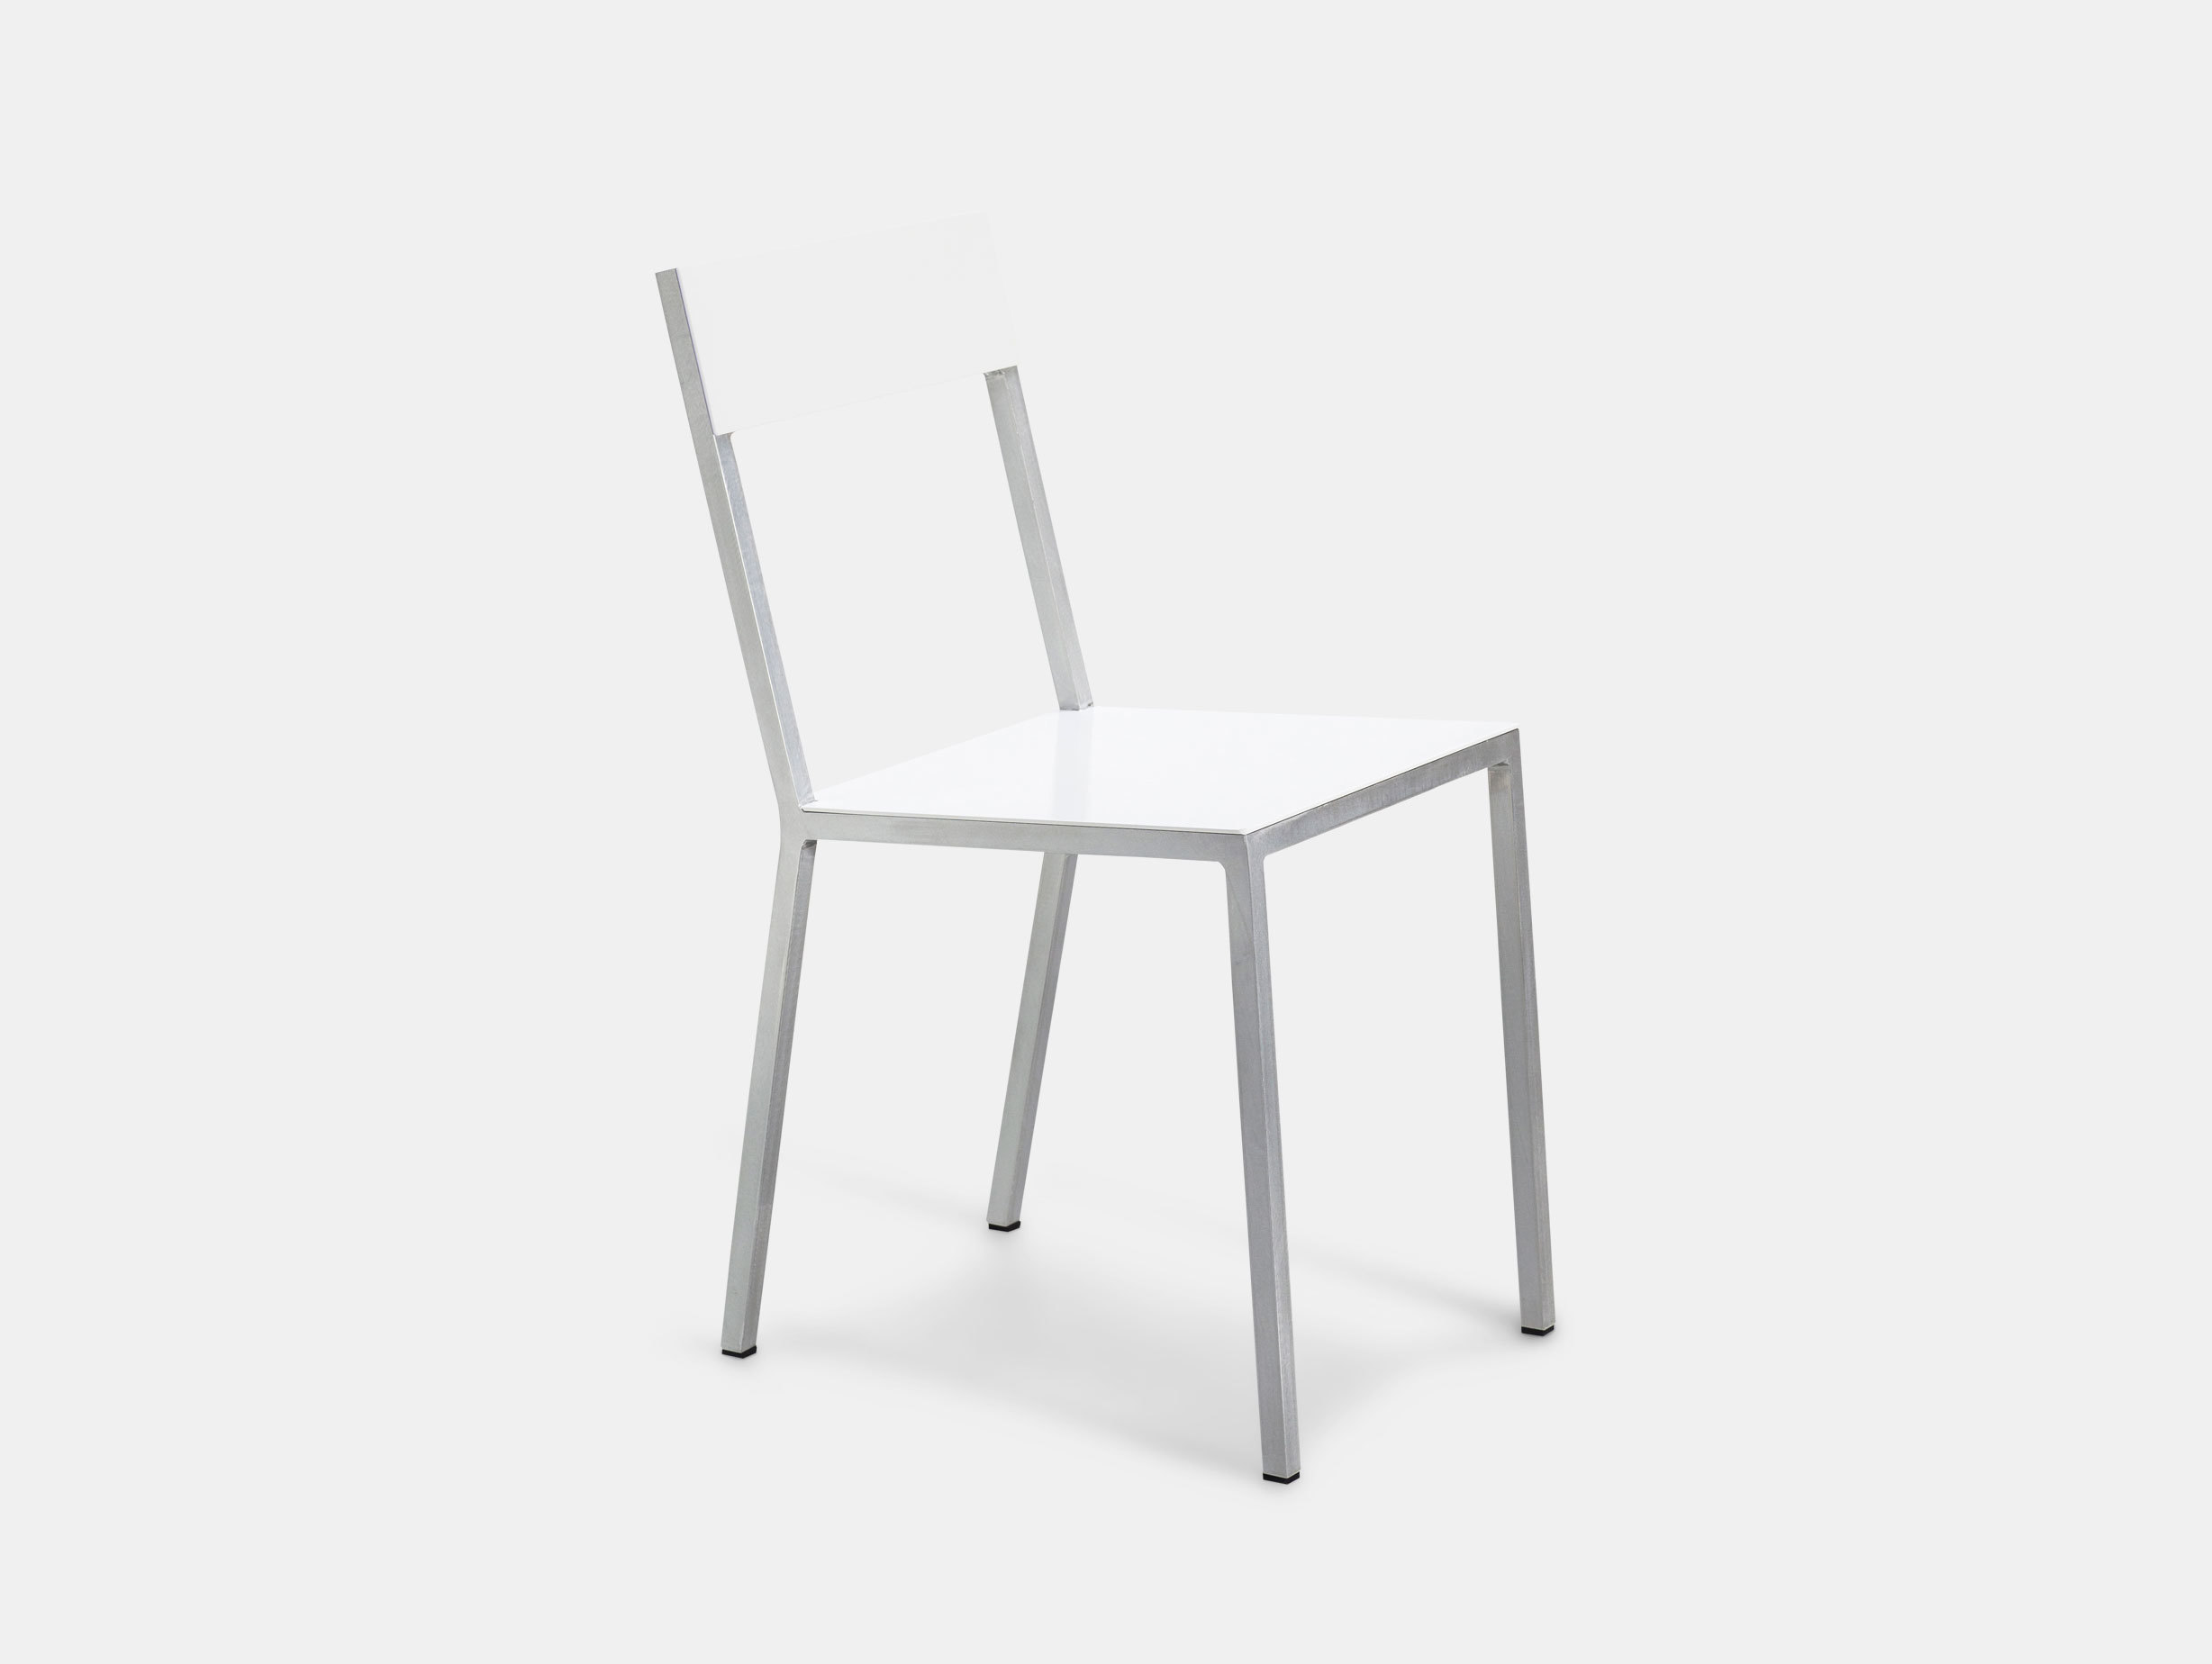 Alu Chair image 13